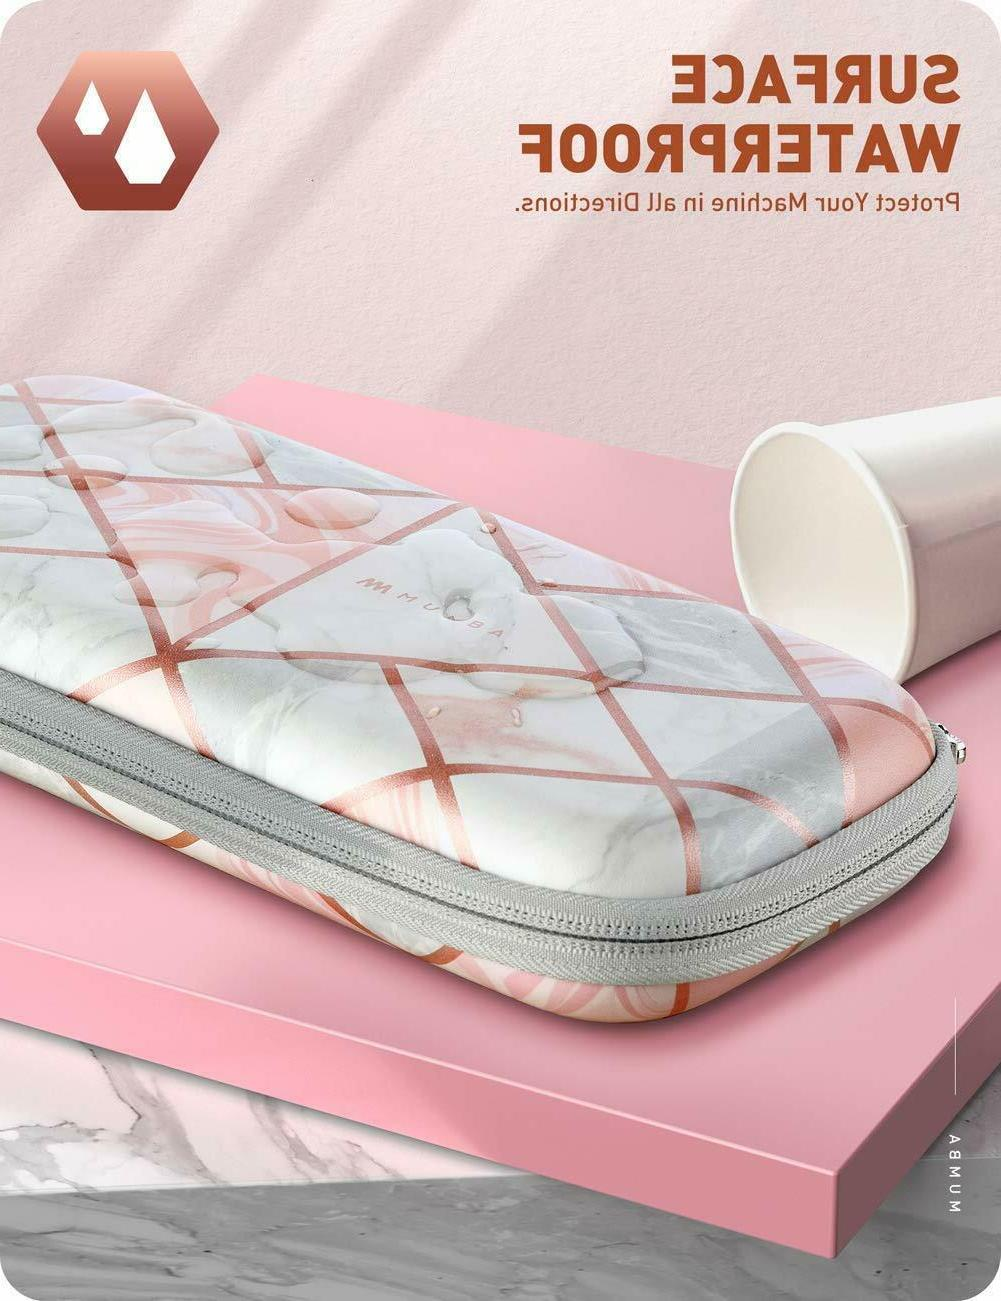 For Switch Slim Hard Shell Travel Carrying Case Girl's Pouch Bag